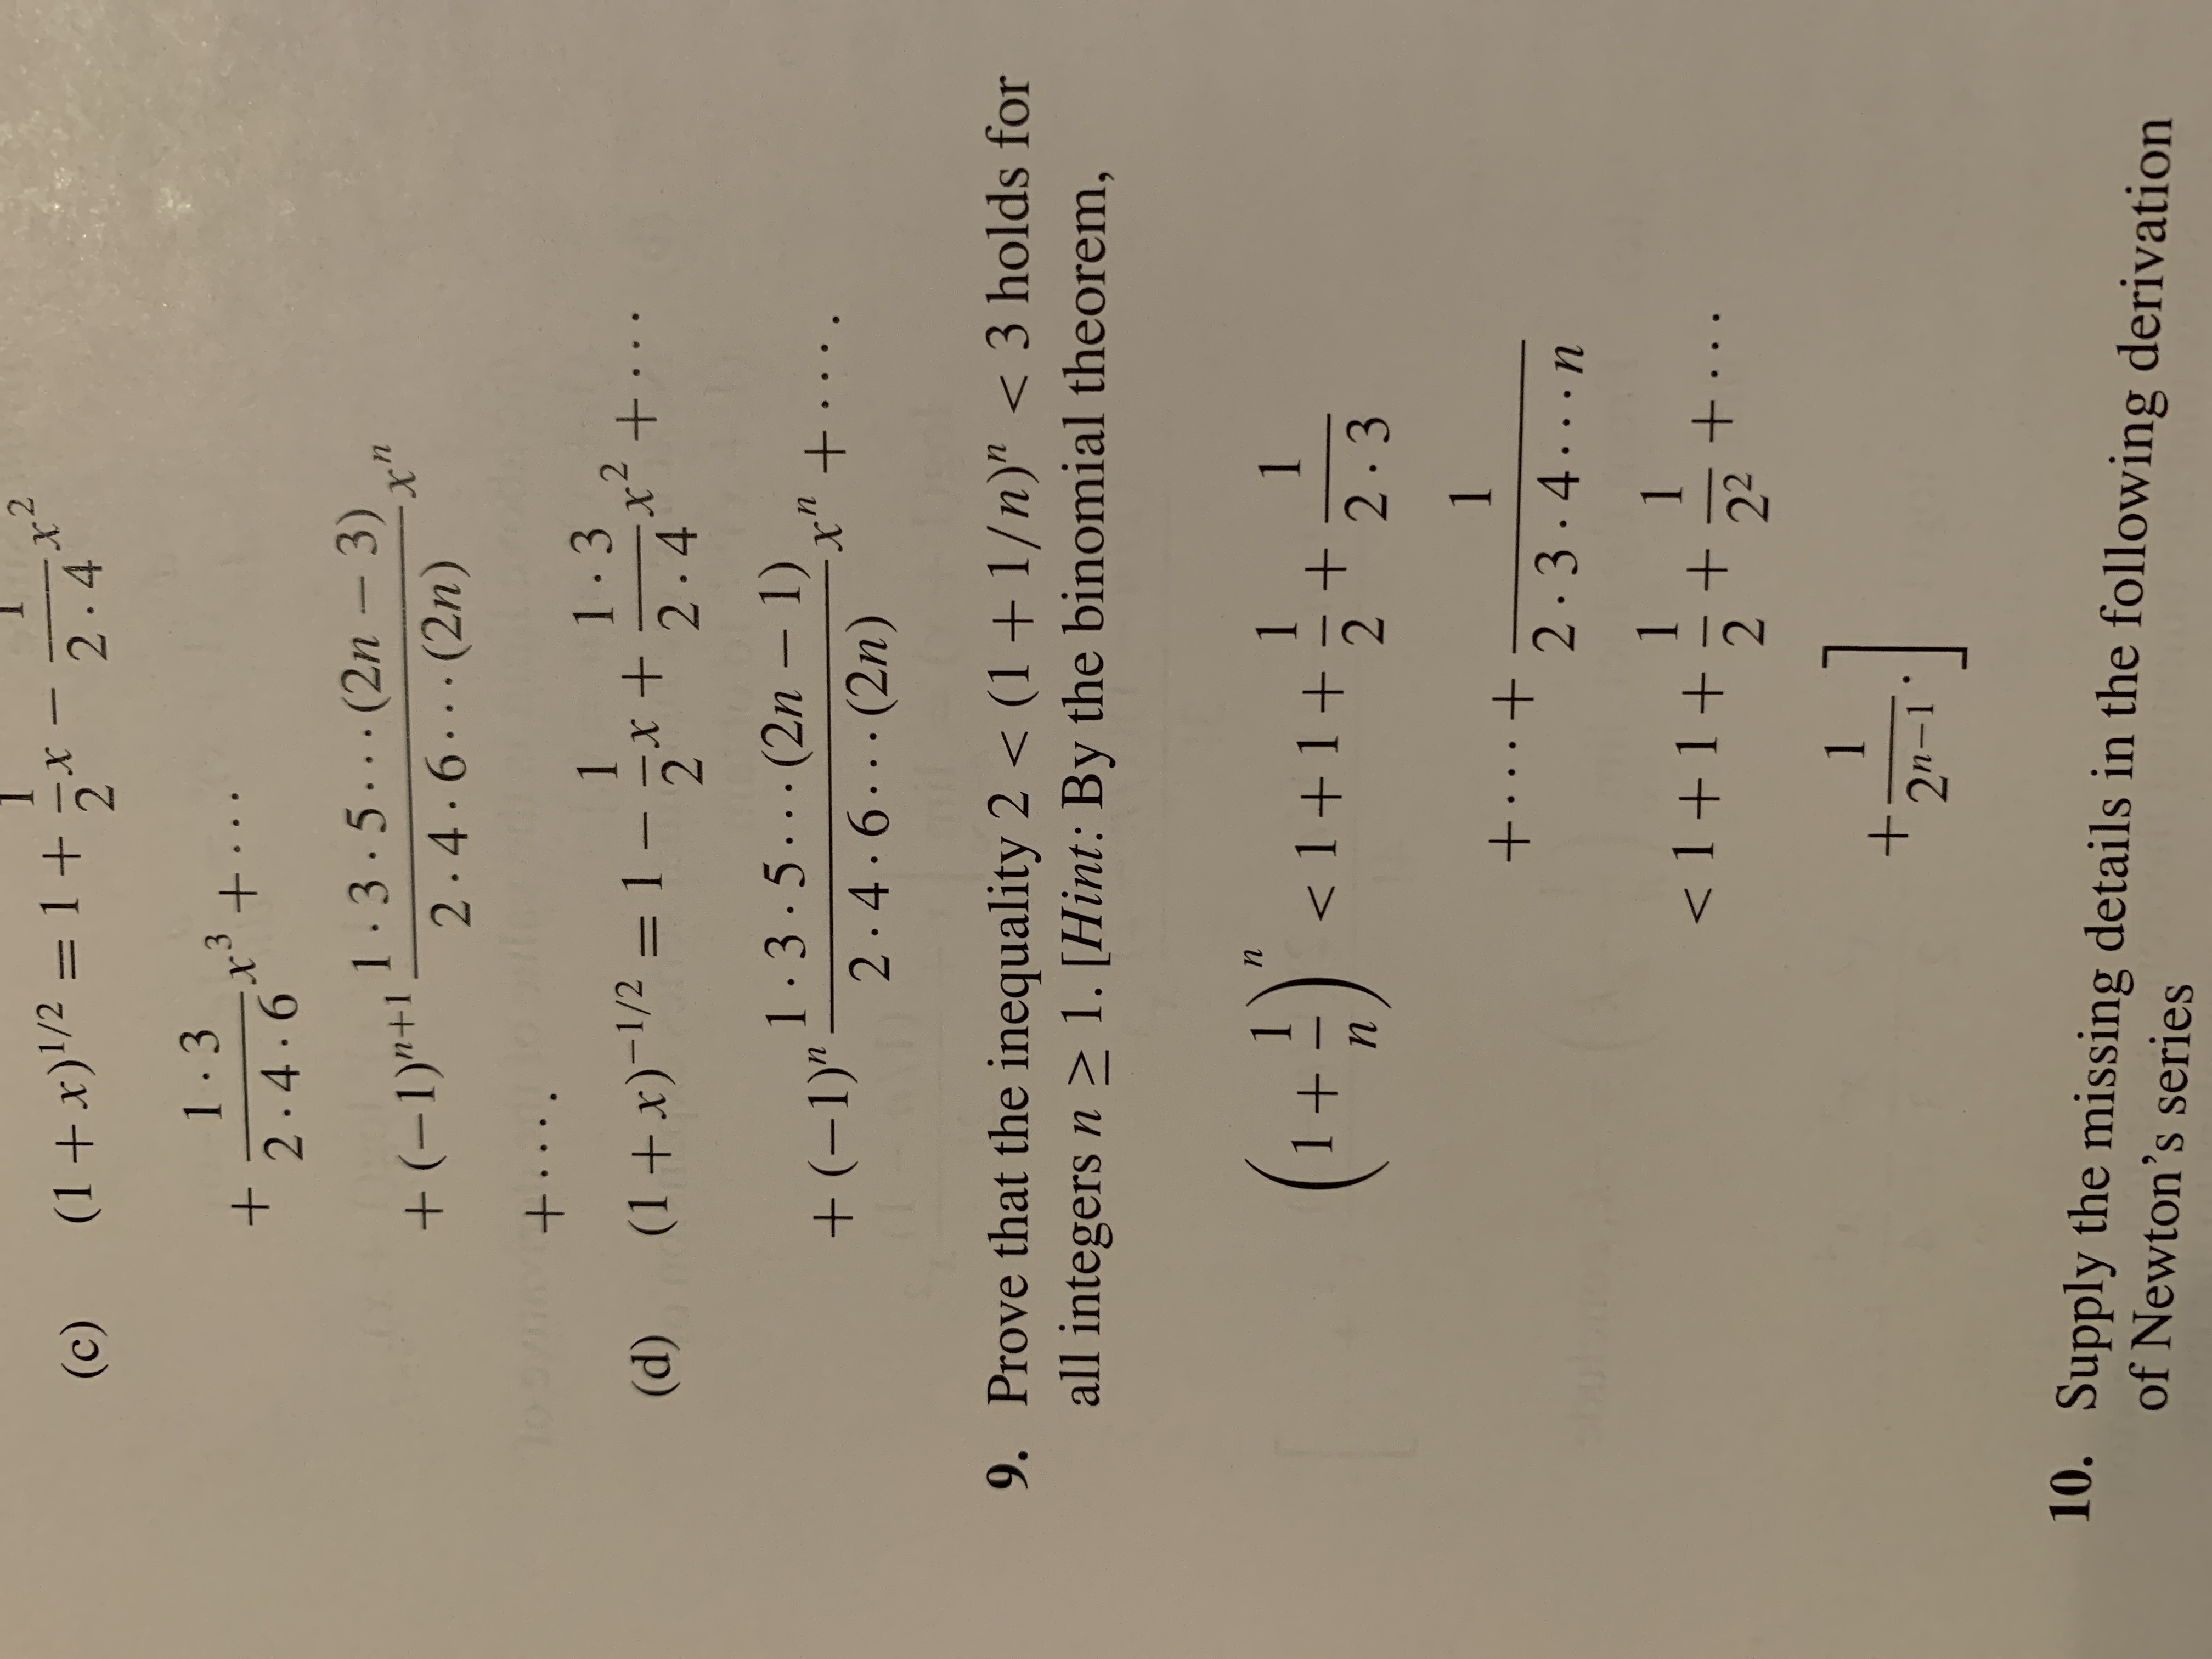 """2.4 (1+x)'/2 = 1 +5* (c) 1-3 3. +. 2.4.6 1-3.5...(2n – 3) +(-1)""""+1 2.4.6...(2n) To +.... 1-3 1 x²+ (1+x)-1/2 = 1 - x + 2.4 · · (d) %3D 1.3.5...(2n – 1) + (-1)"""" - .t. x"""" +.... 2.4.6...(2n) 9. Prove that the inequality 2 < (1+ 1/n)"""" < 3 holds for all integers n > 1. [Hint: By the binomial theorem, (1+)"""". 1 < 1+1+ 1 2.3 1 +...+ 2.3.4...n 1 < 1 +1+ 1 +.. 22 1. 2n-1 10. Supply the missing details in the following derivation of Newton's series"""